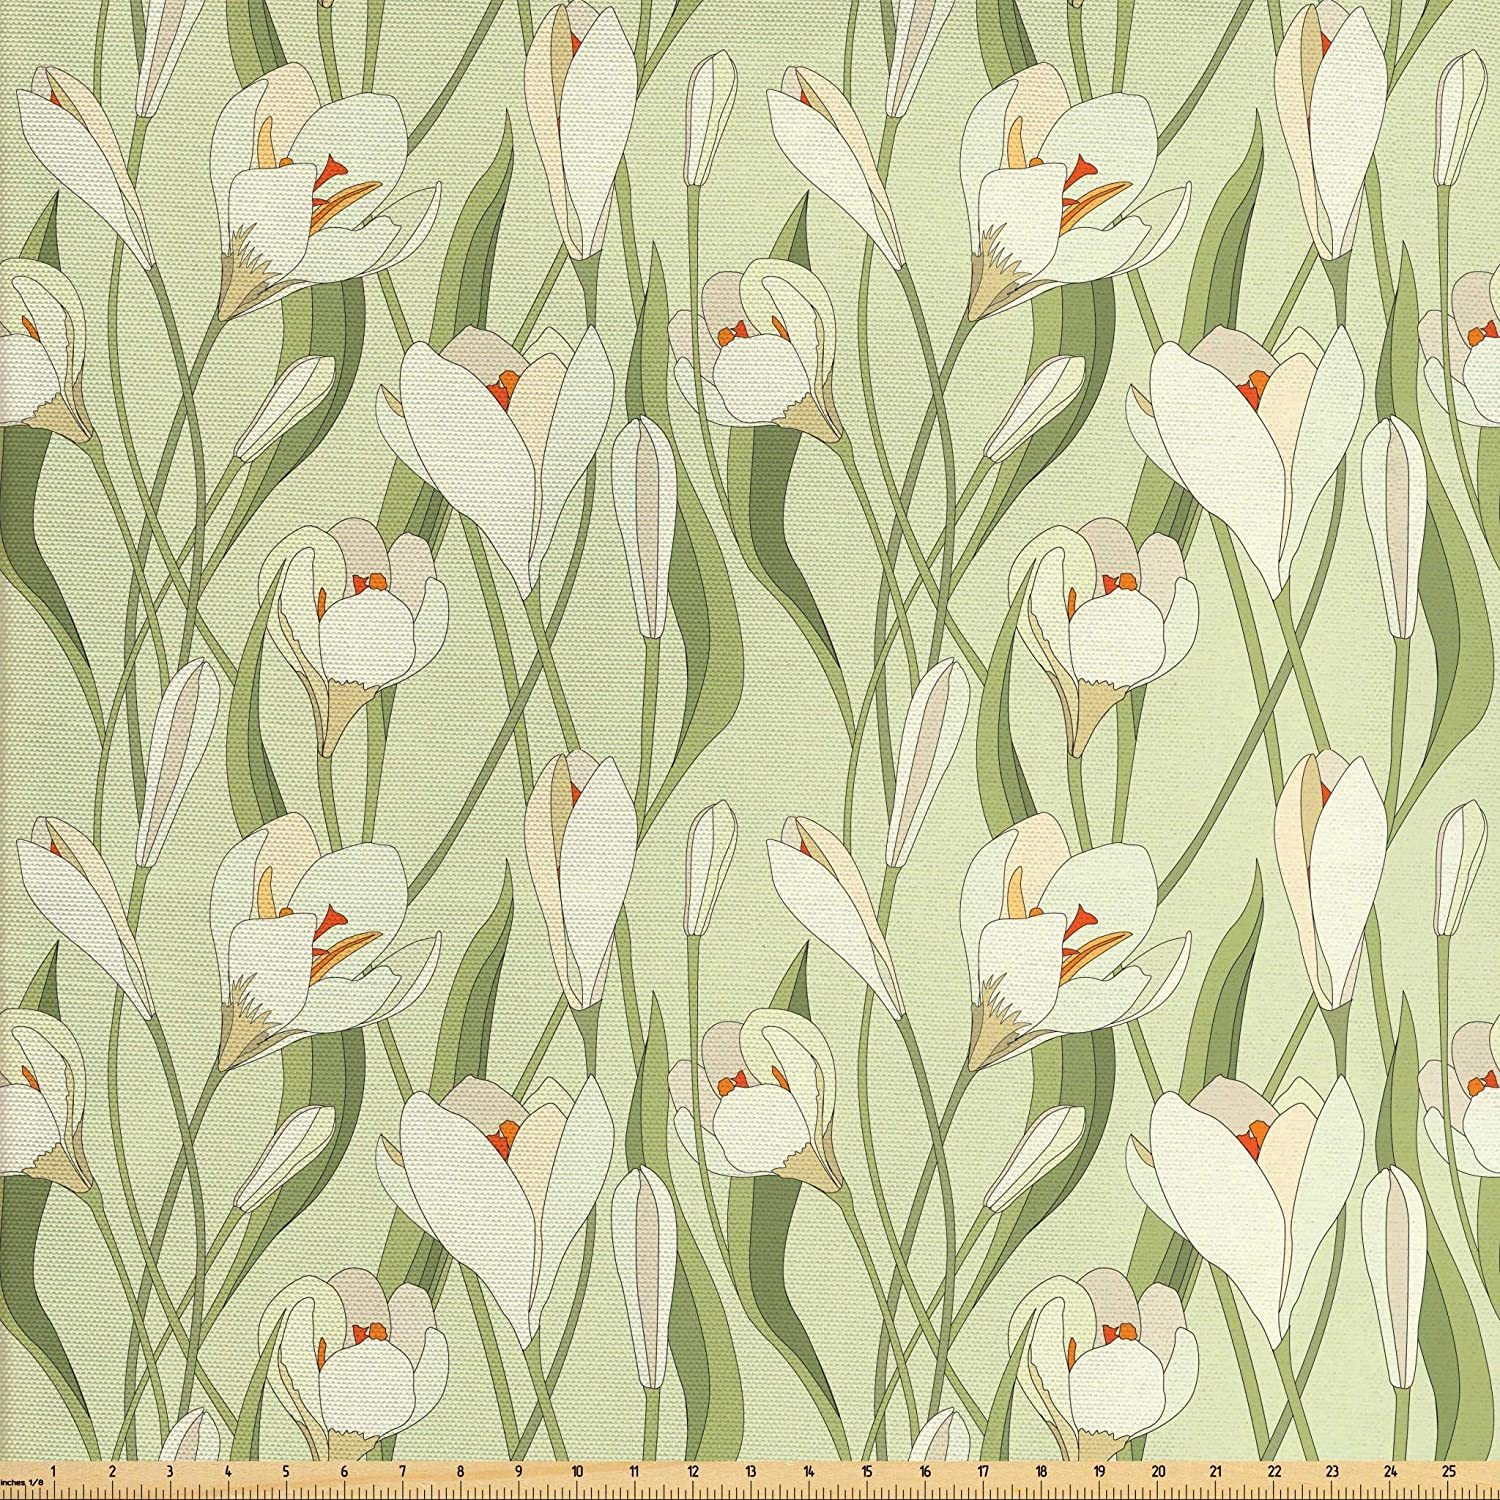 Ambesonne Garden Art Fabric by The Yard, Spring Flowers Bouquet Crocuses with Healthy Fresh Petals Botanical, Decorative Fabric for Upholstery and Home Accents, 2 Yards, Green Orange